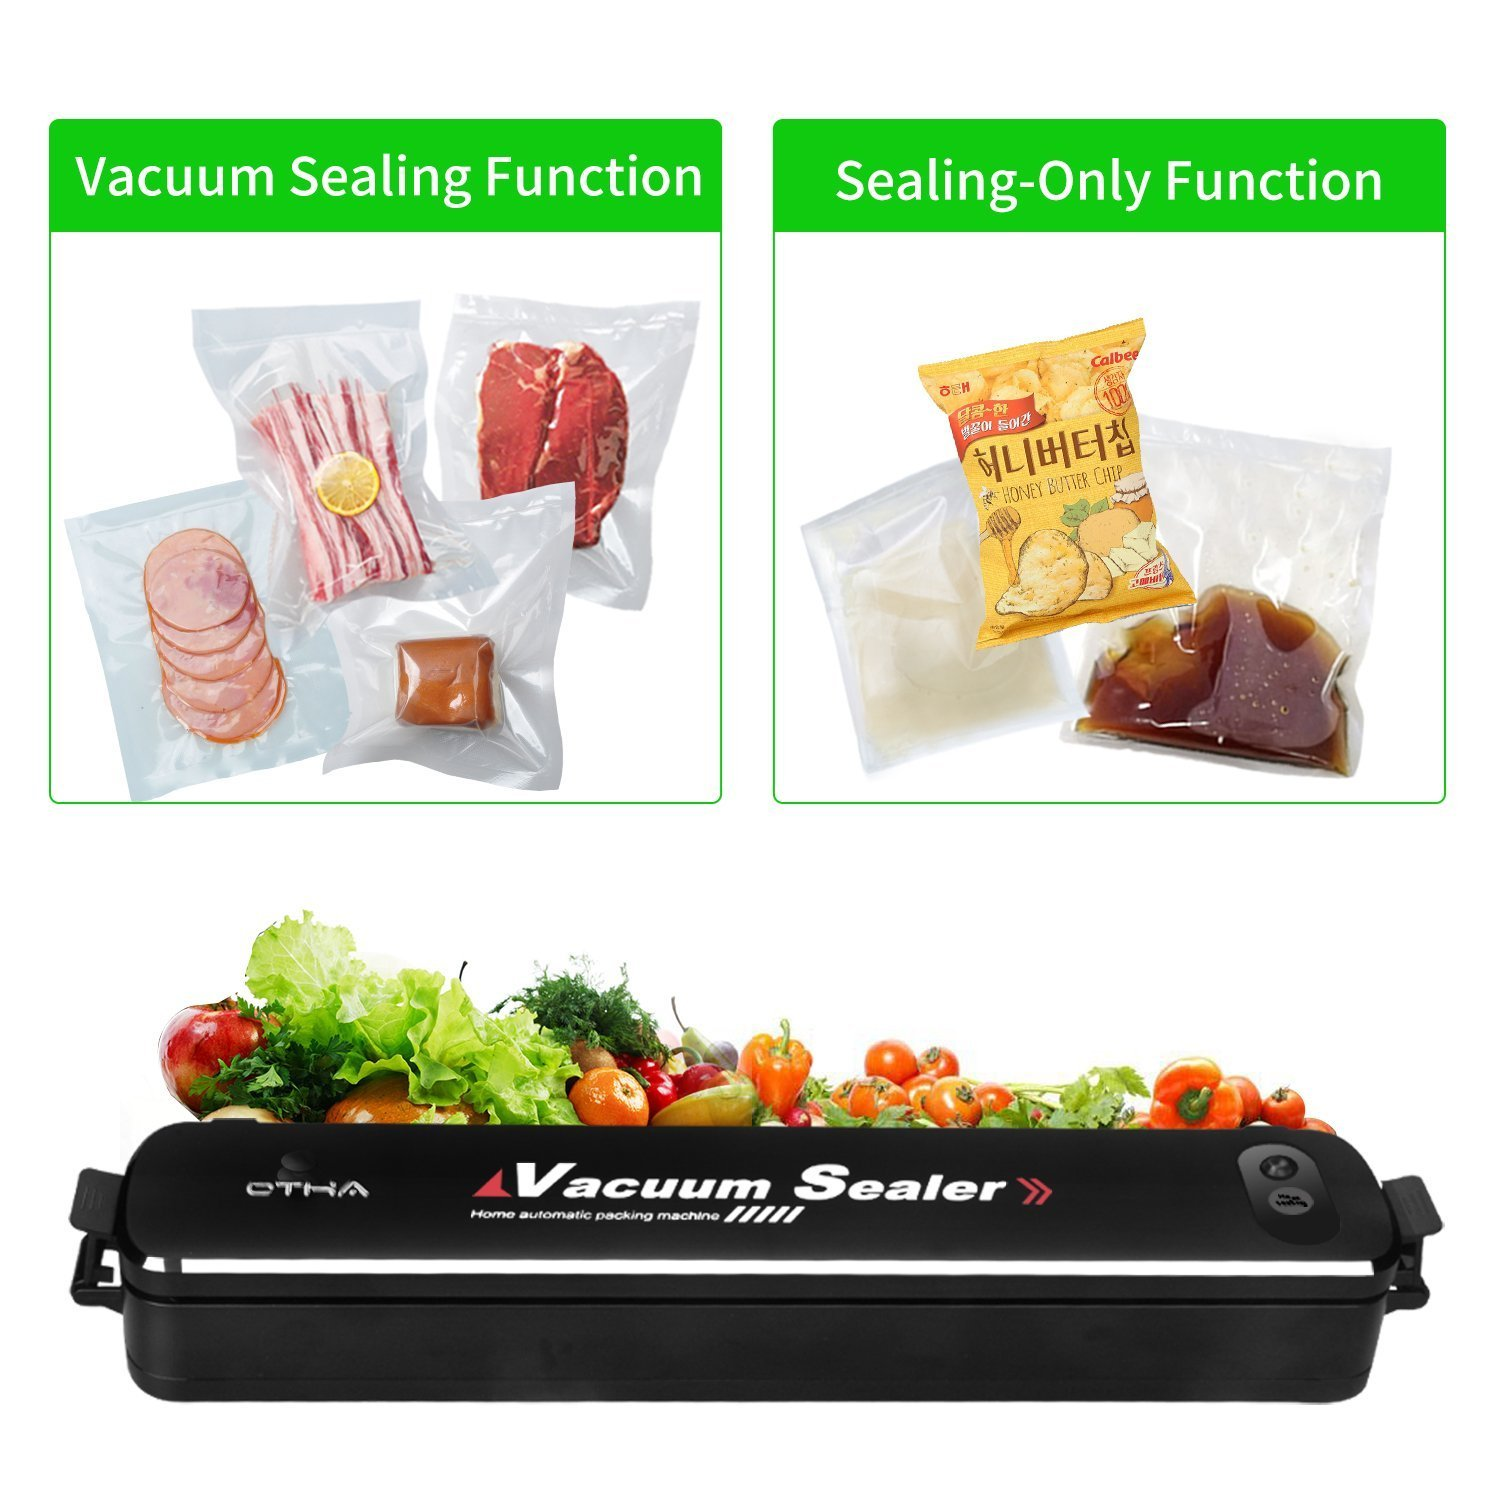 Food Vacuum Sealer Machine, Compact Automatic Vacuum Sealing System for Dry & Moist Foods Preservation and Storage, Great for Youth Keeping Cereal and Dry Goods Longer+15 Sealer Bags